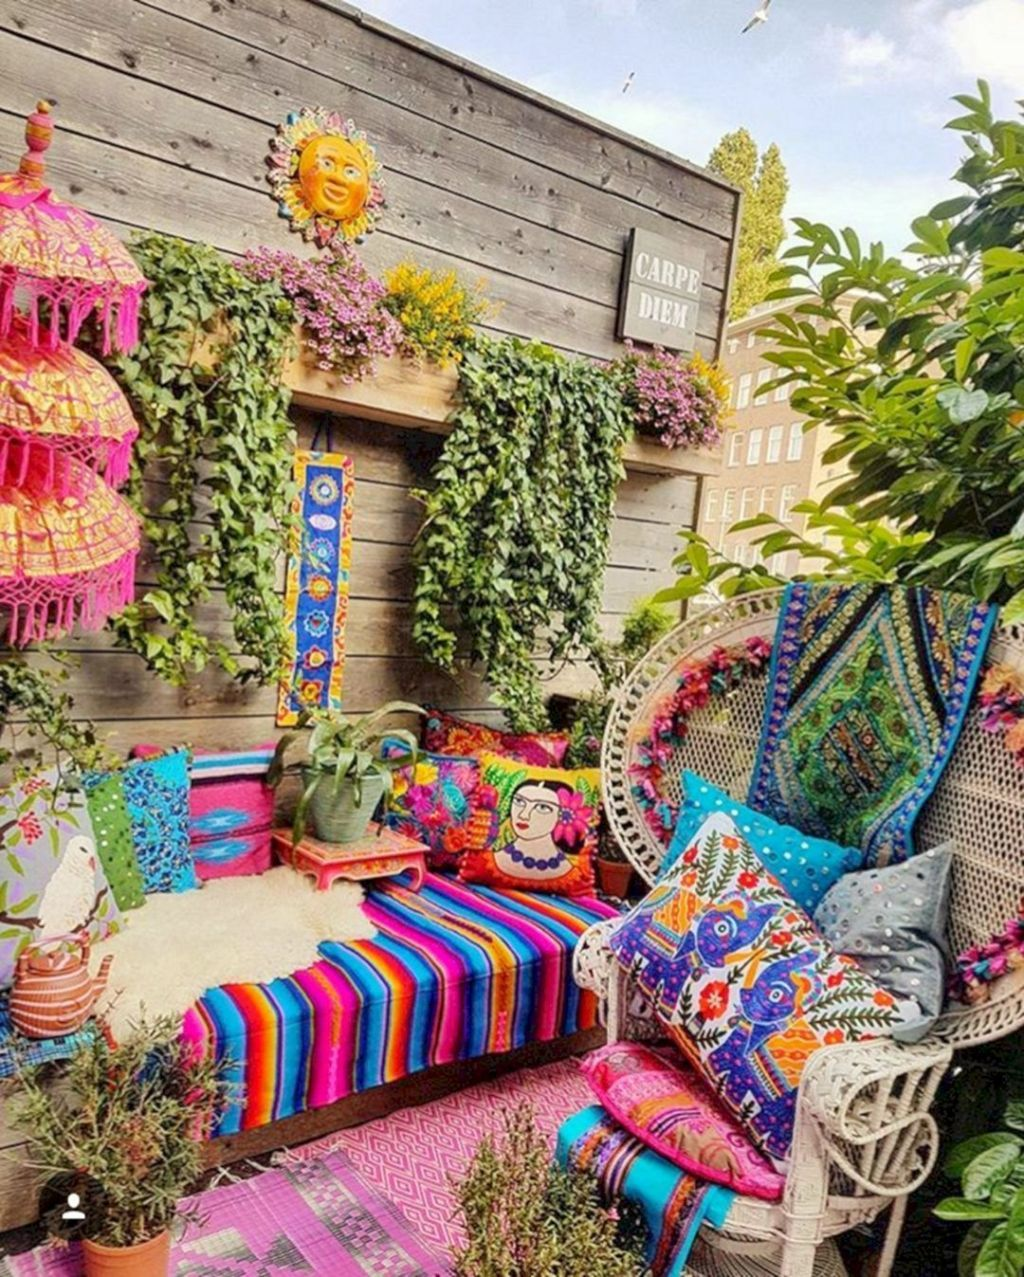 10 Boho Chic Kitchen Interior Design Ideas: 35 Chic Bohemian Decorating Ideas For Stunning Front Porch